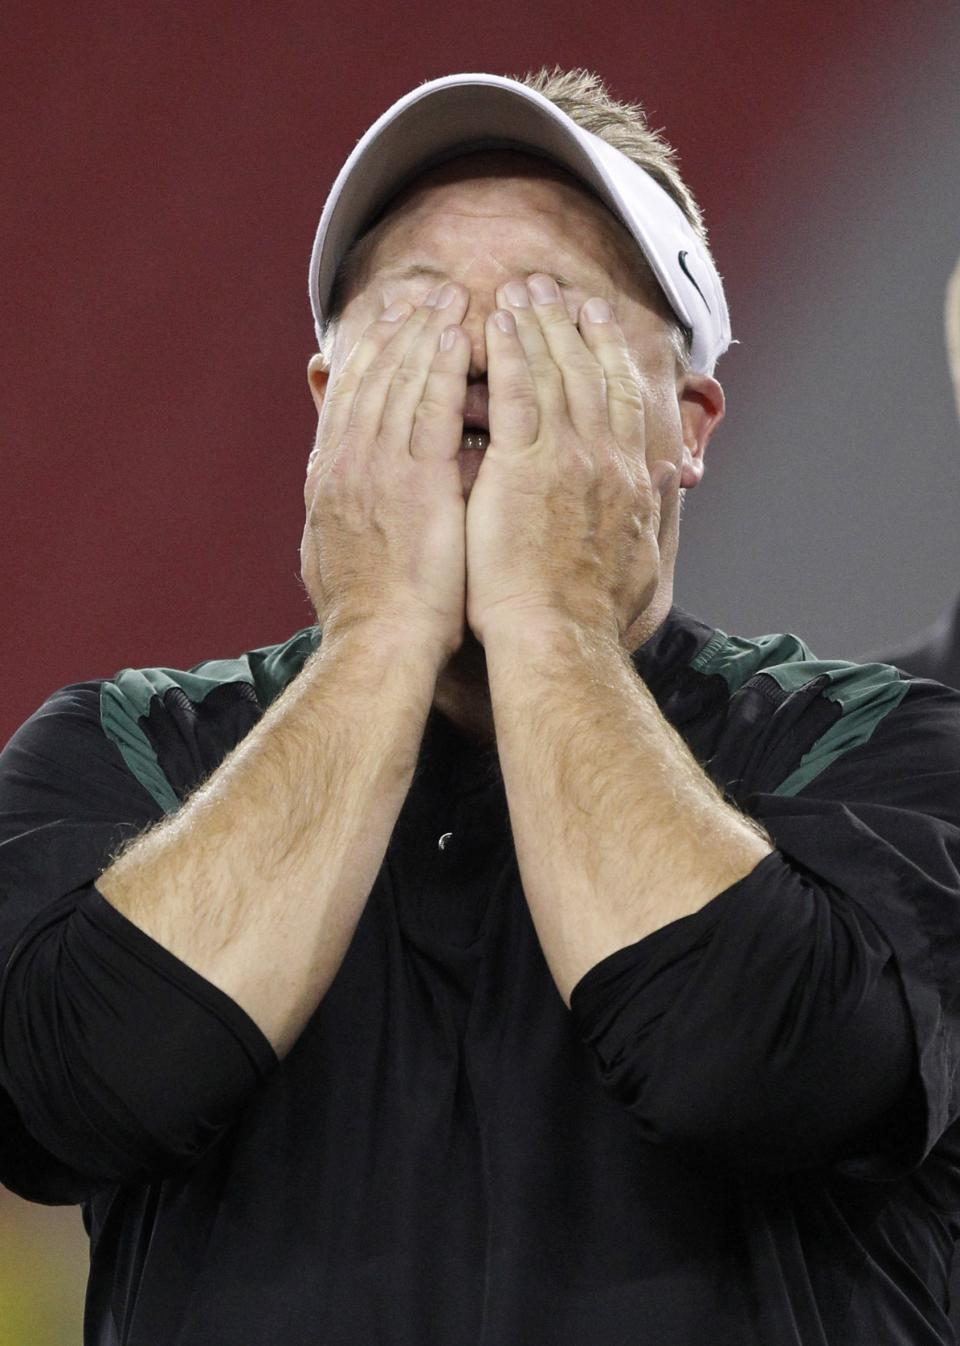 Oregon head coach Chip Kelly wipes his eyes after the Fiesta Bowl NCAA college football game, Thursday, Jan. 3, 2013, in Glendale, Ariz. Oregon defeated Kansas State 35-17.(AP Photo/Paul Connors)